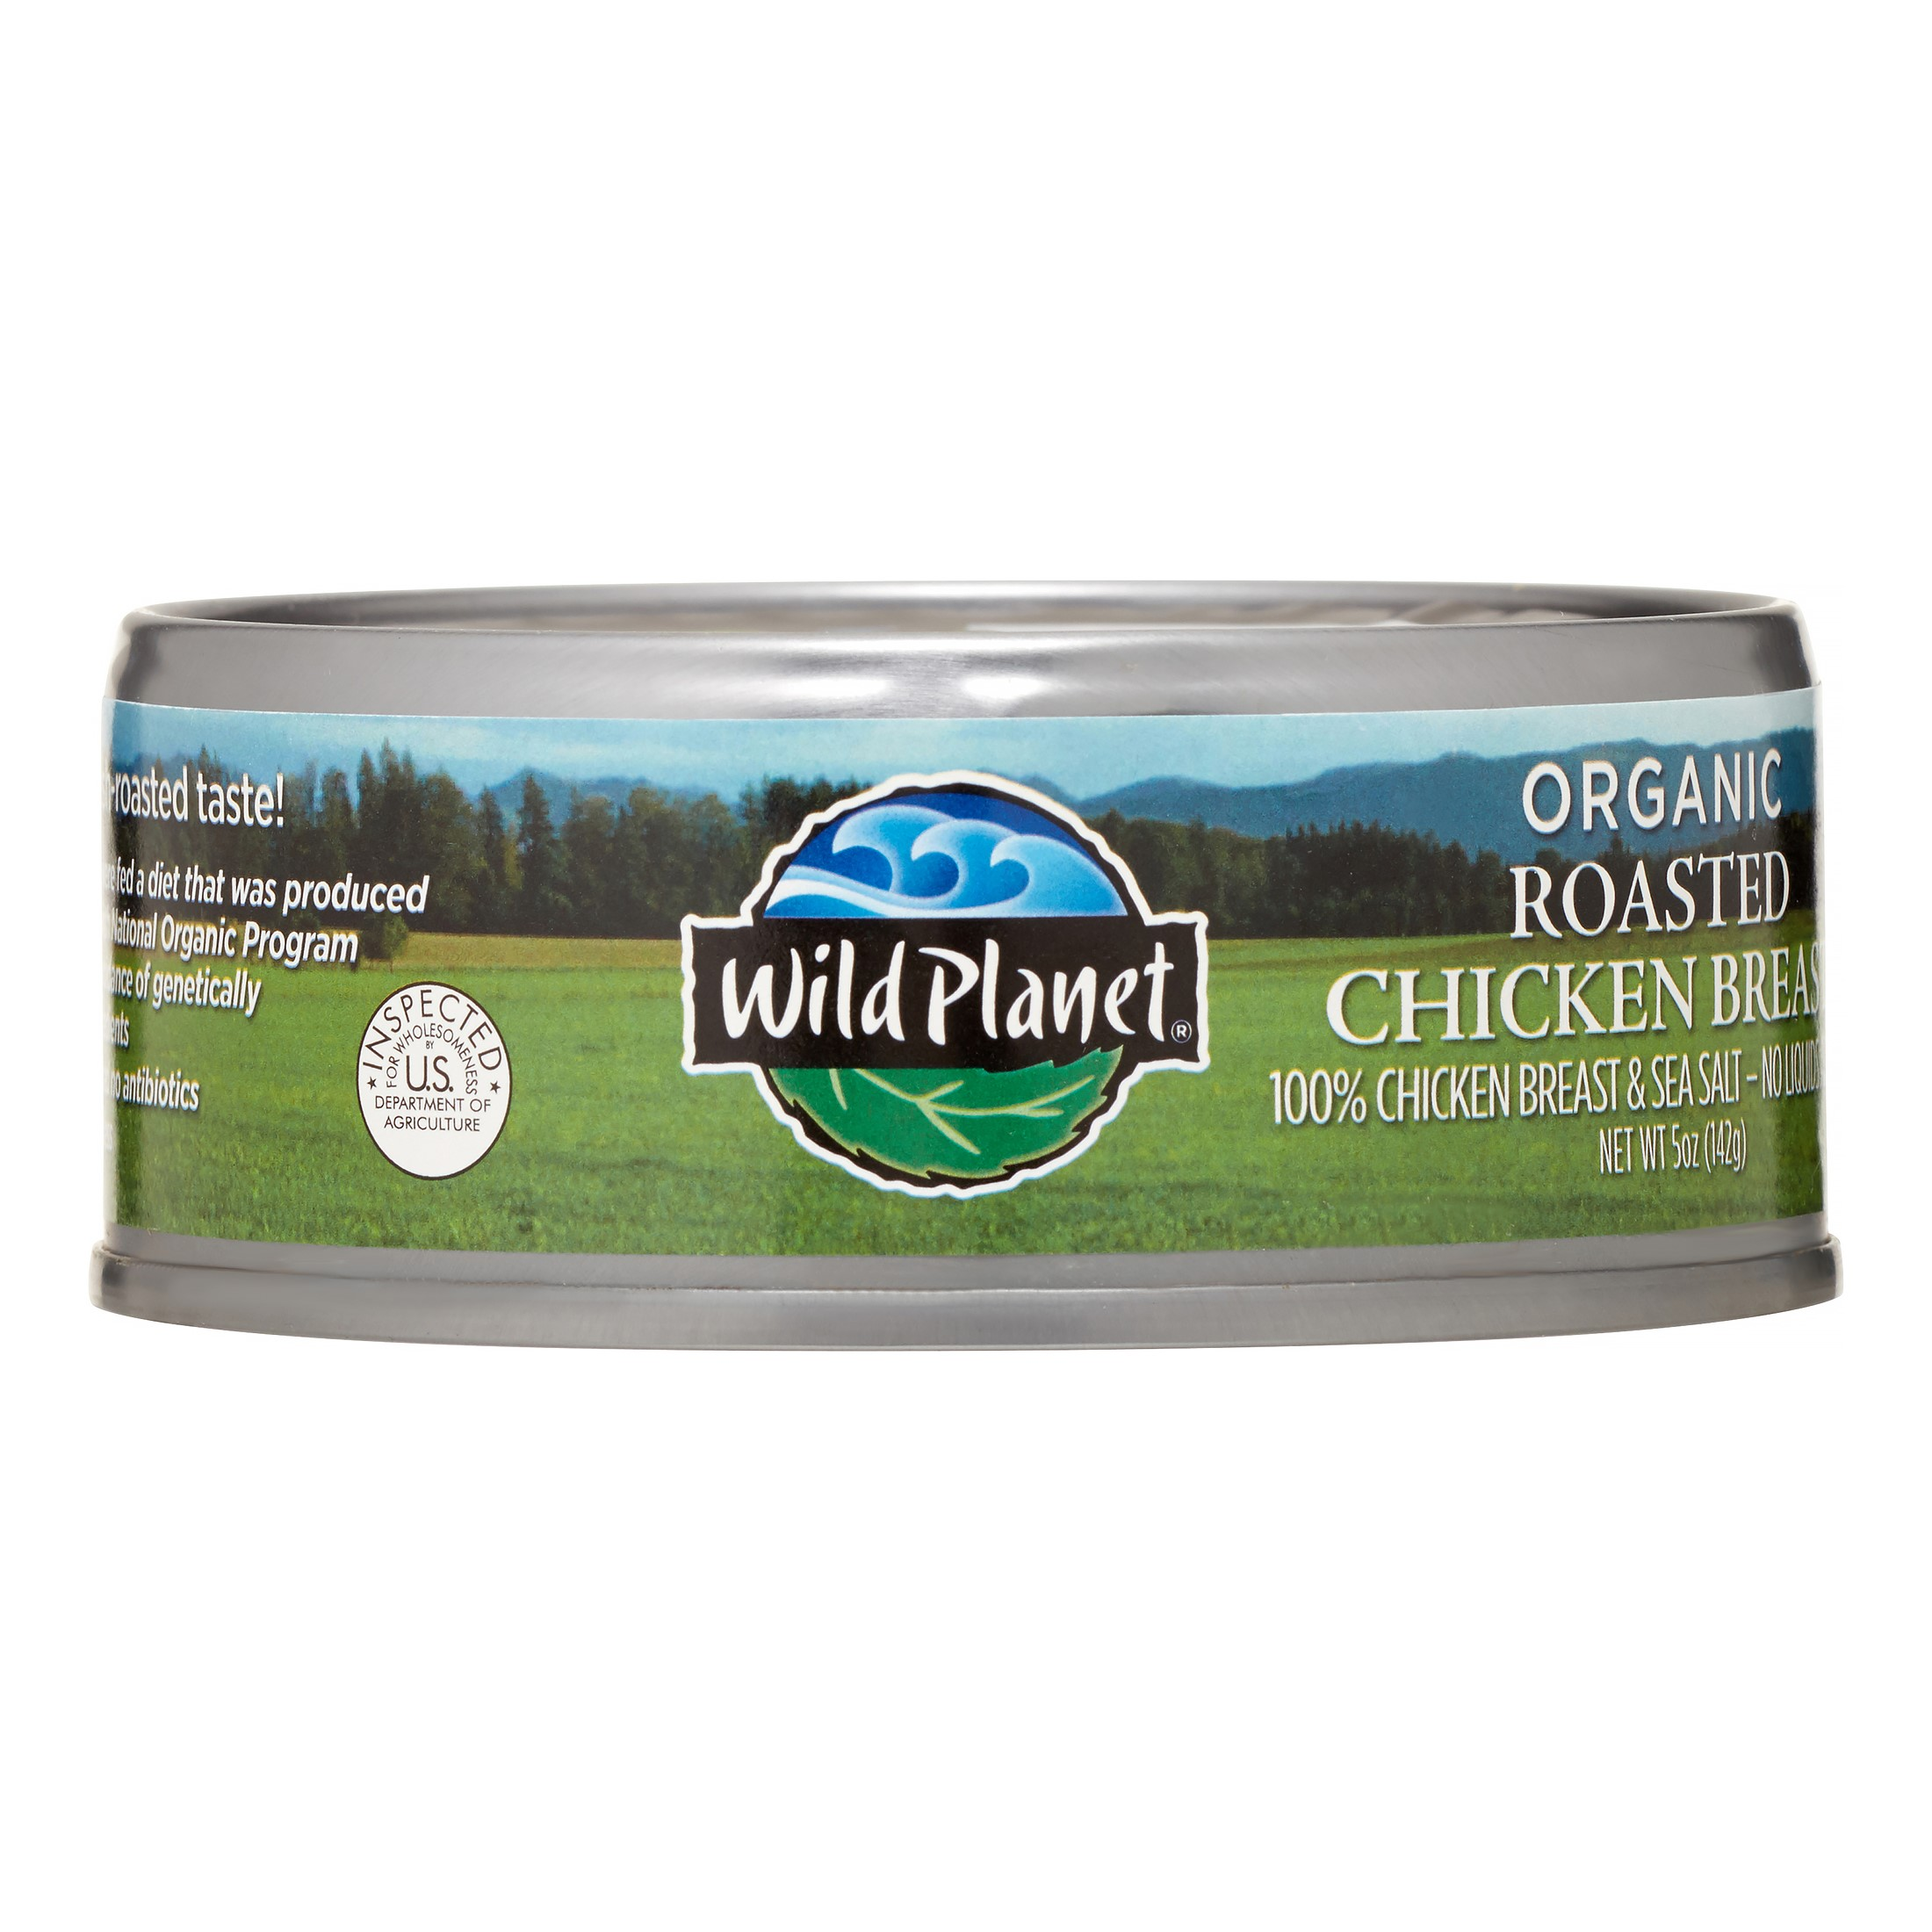 Wild Planet Organic Roasted Chicken Breast, 5 oz, (Pack of 12)